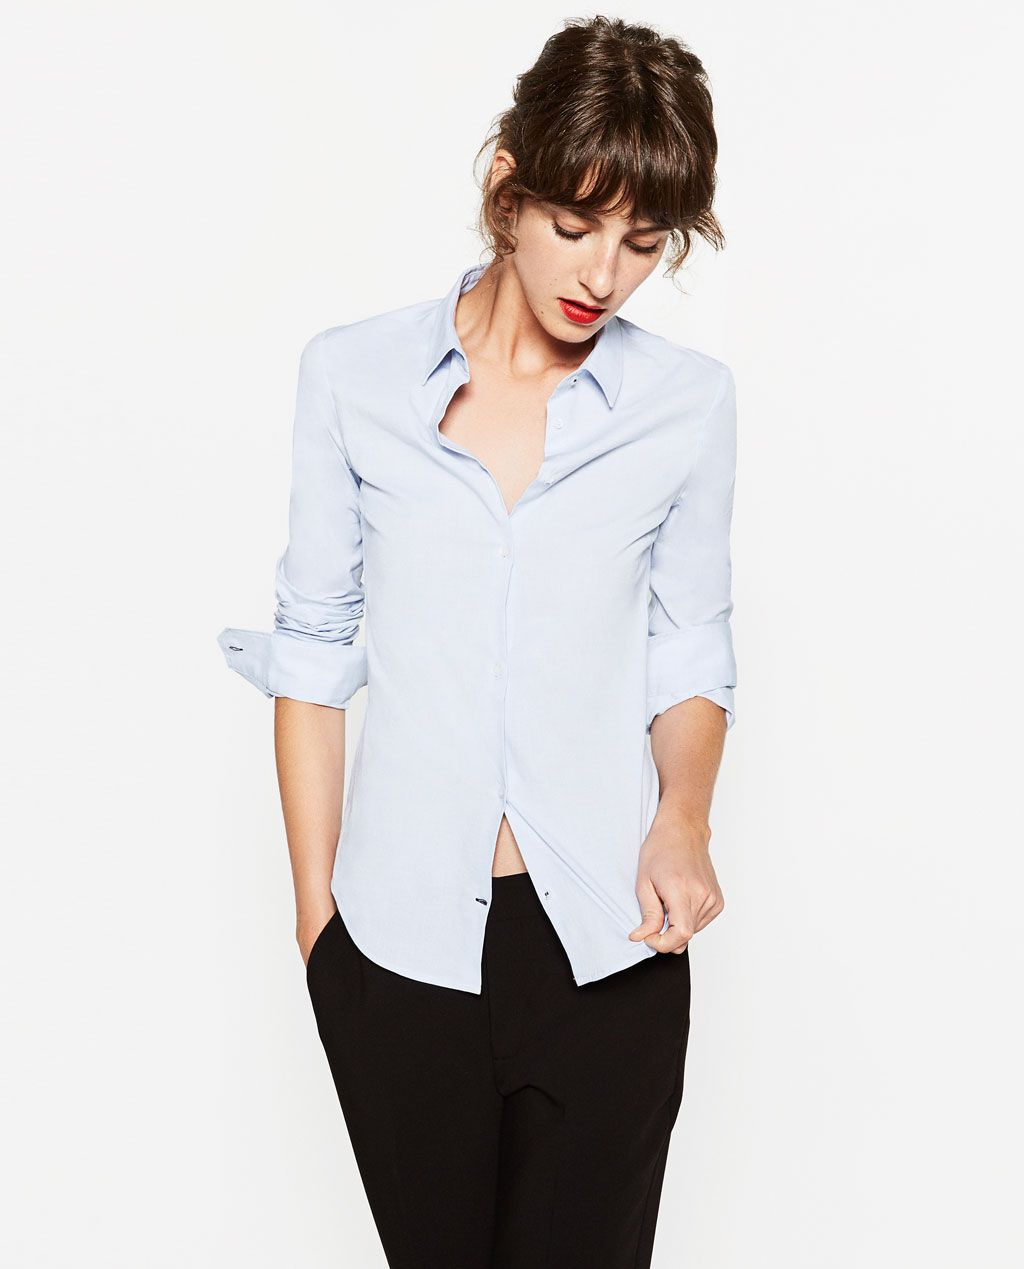 Basic Woman Shirt Style Poplin Zara Pinterest TaBHqB